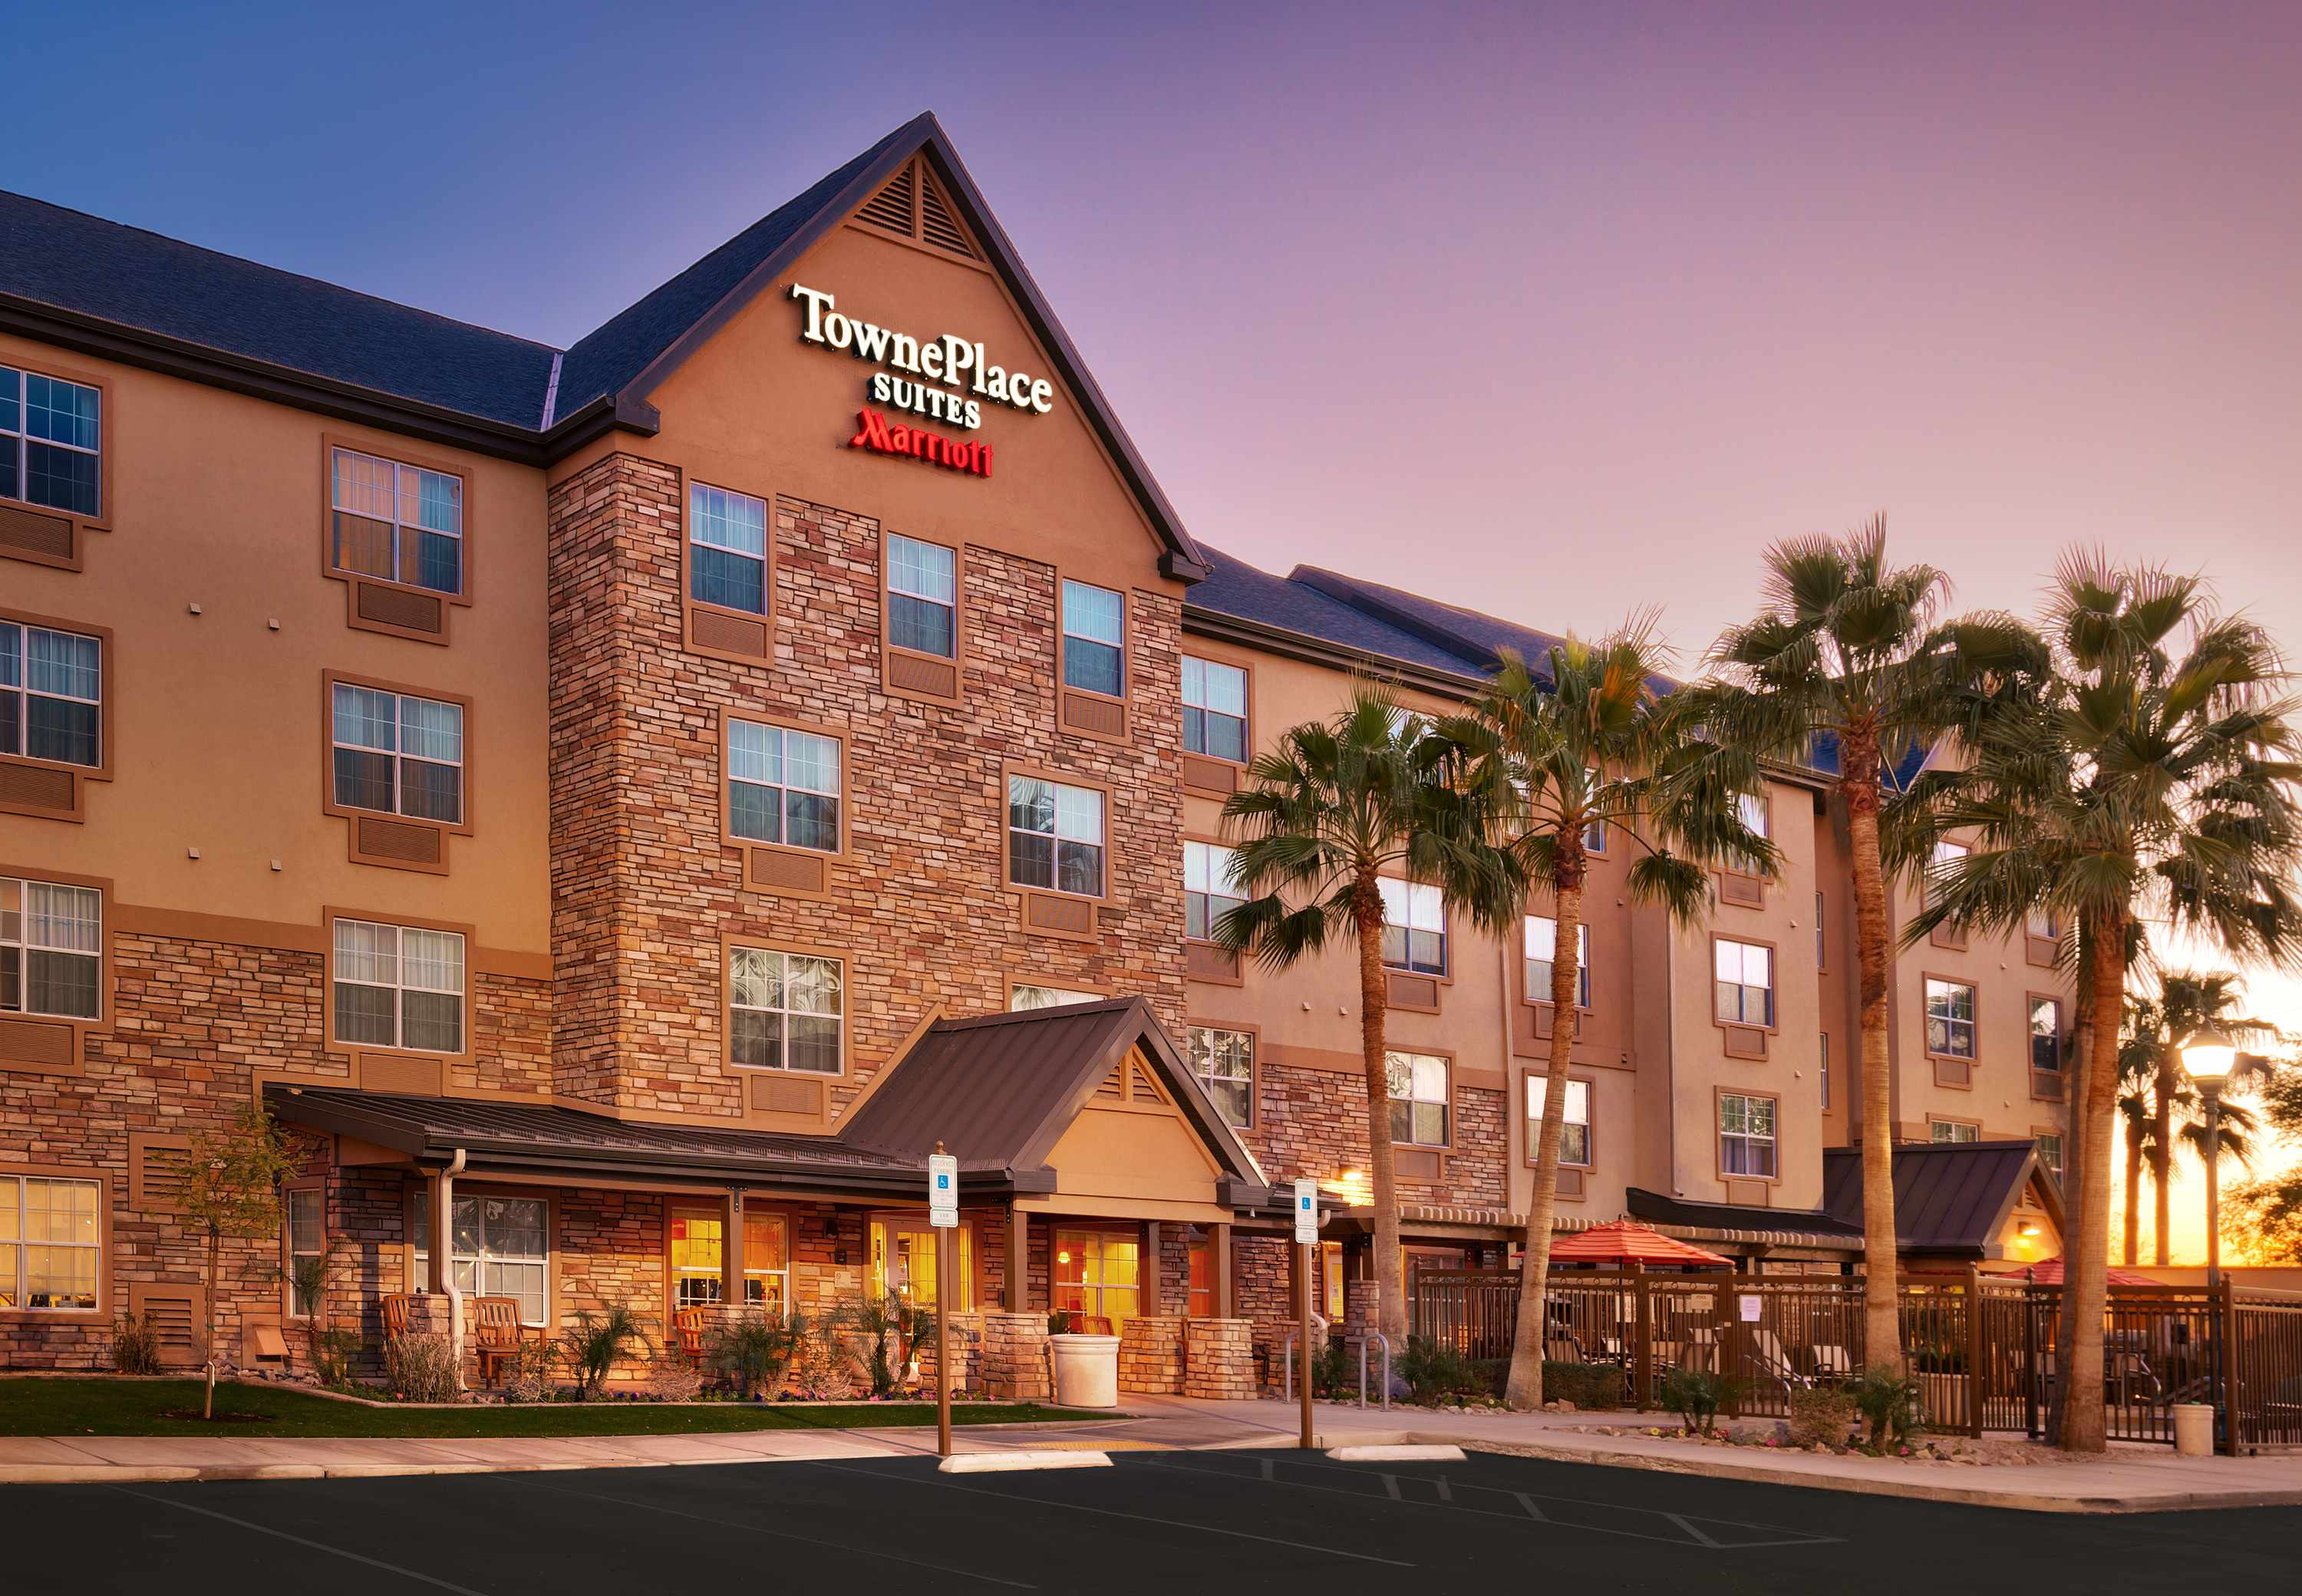 TownePlace Suites by Marriott Yuma image 1